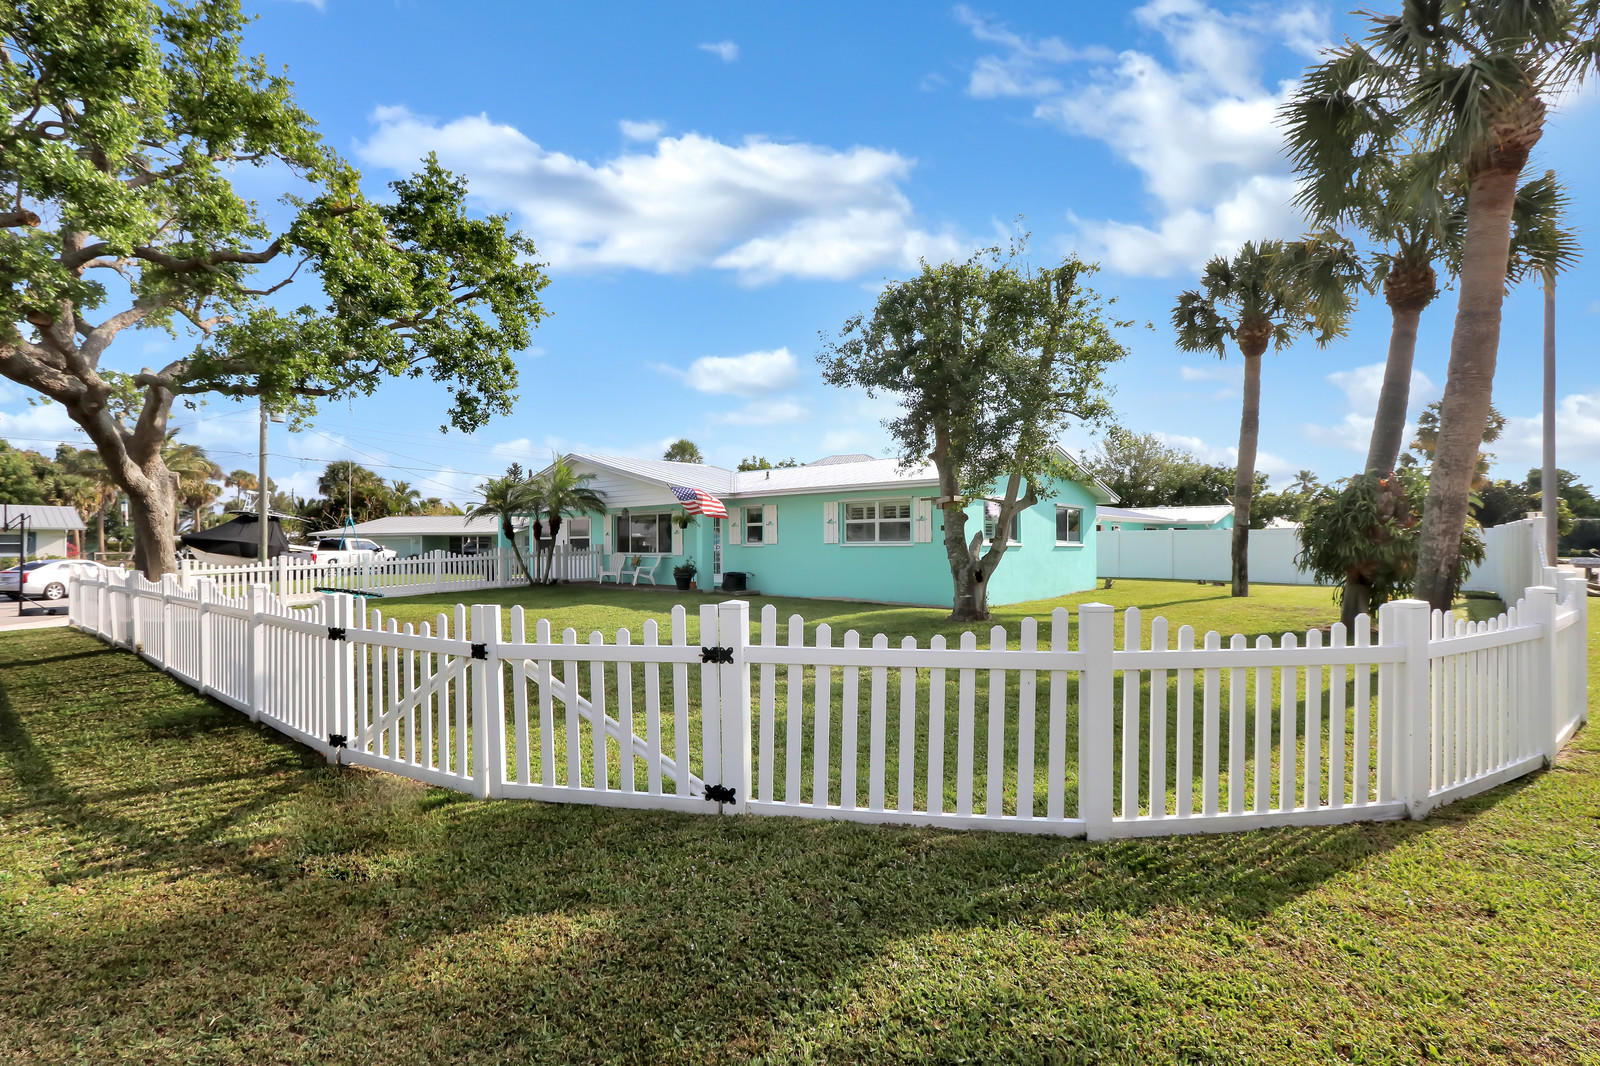 INDIAN RIVER GARDENS HOMES